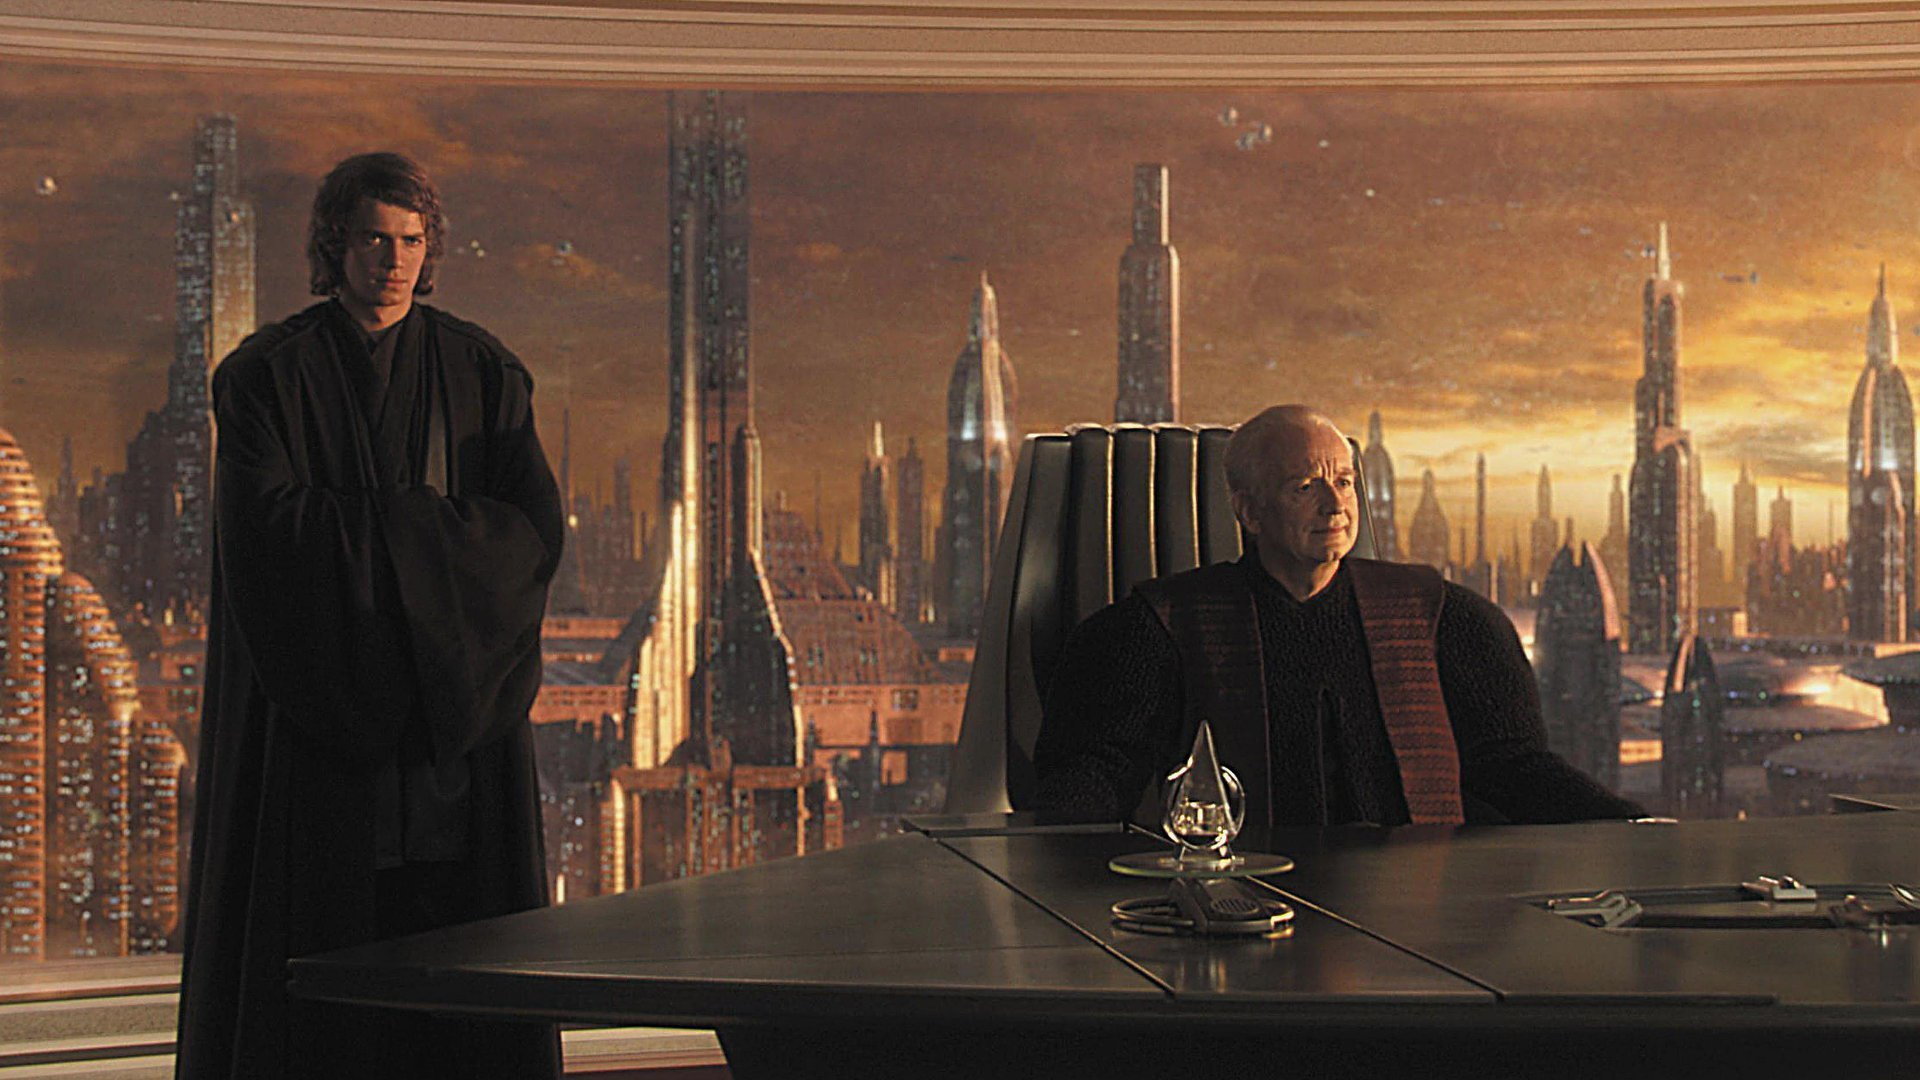 Free Download Star Wars Episode 3 Iii Revenge Of The Sith Wallpaper Id 109944 Full